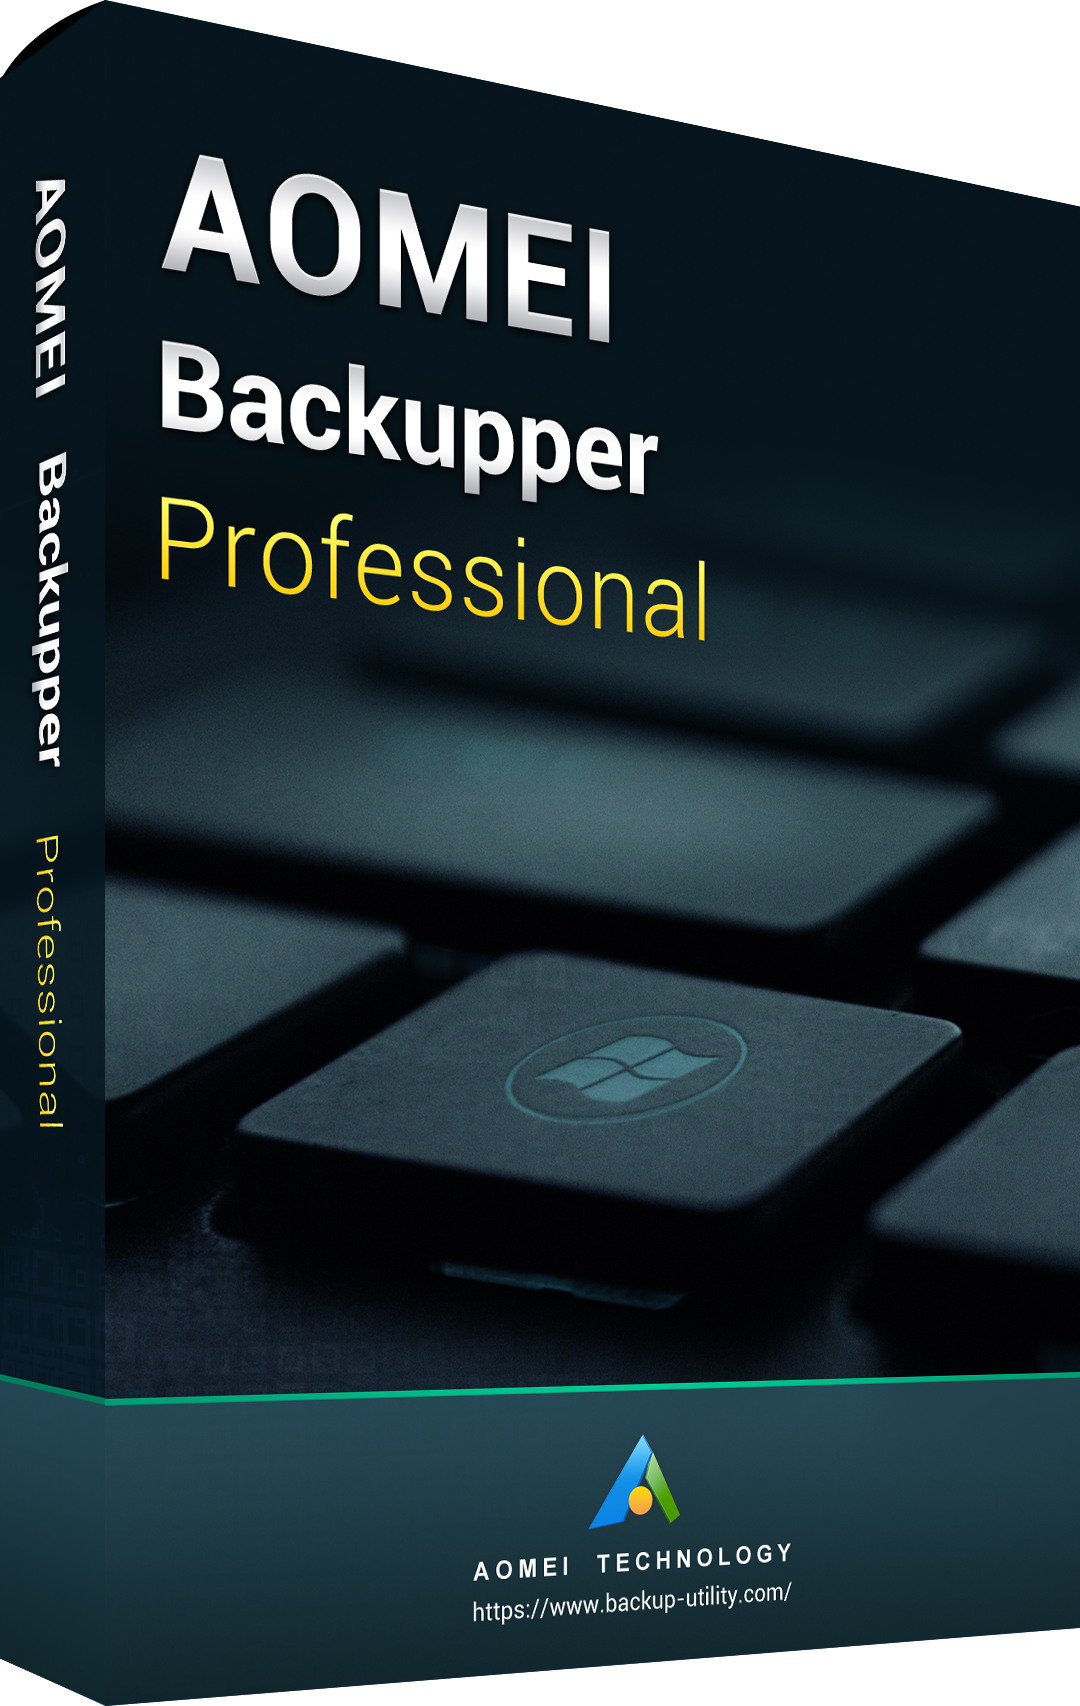 AOMEI Backupper Professional 5.7 Key Global